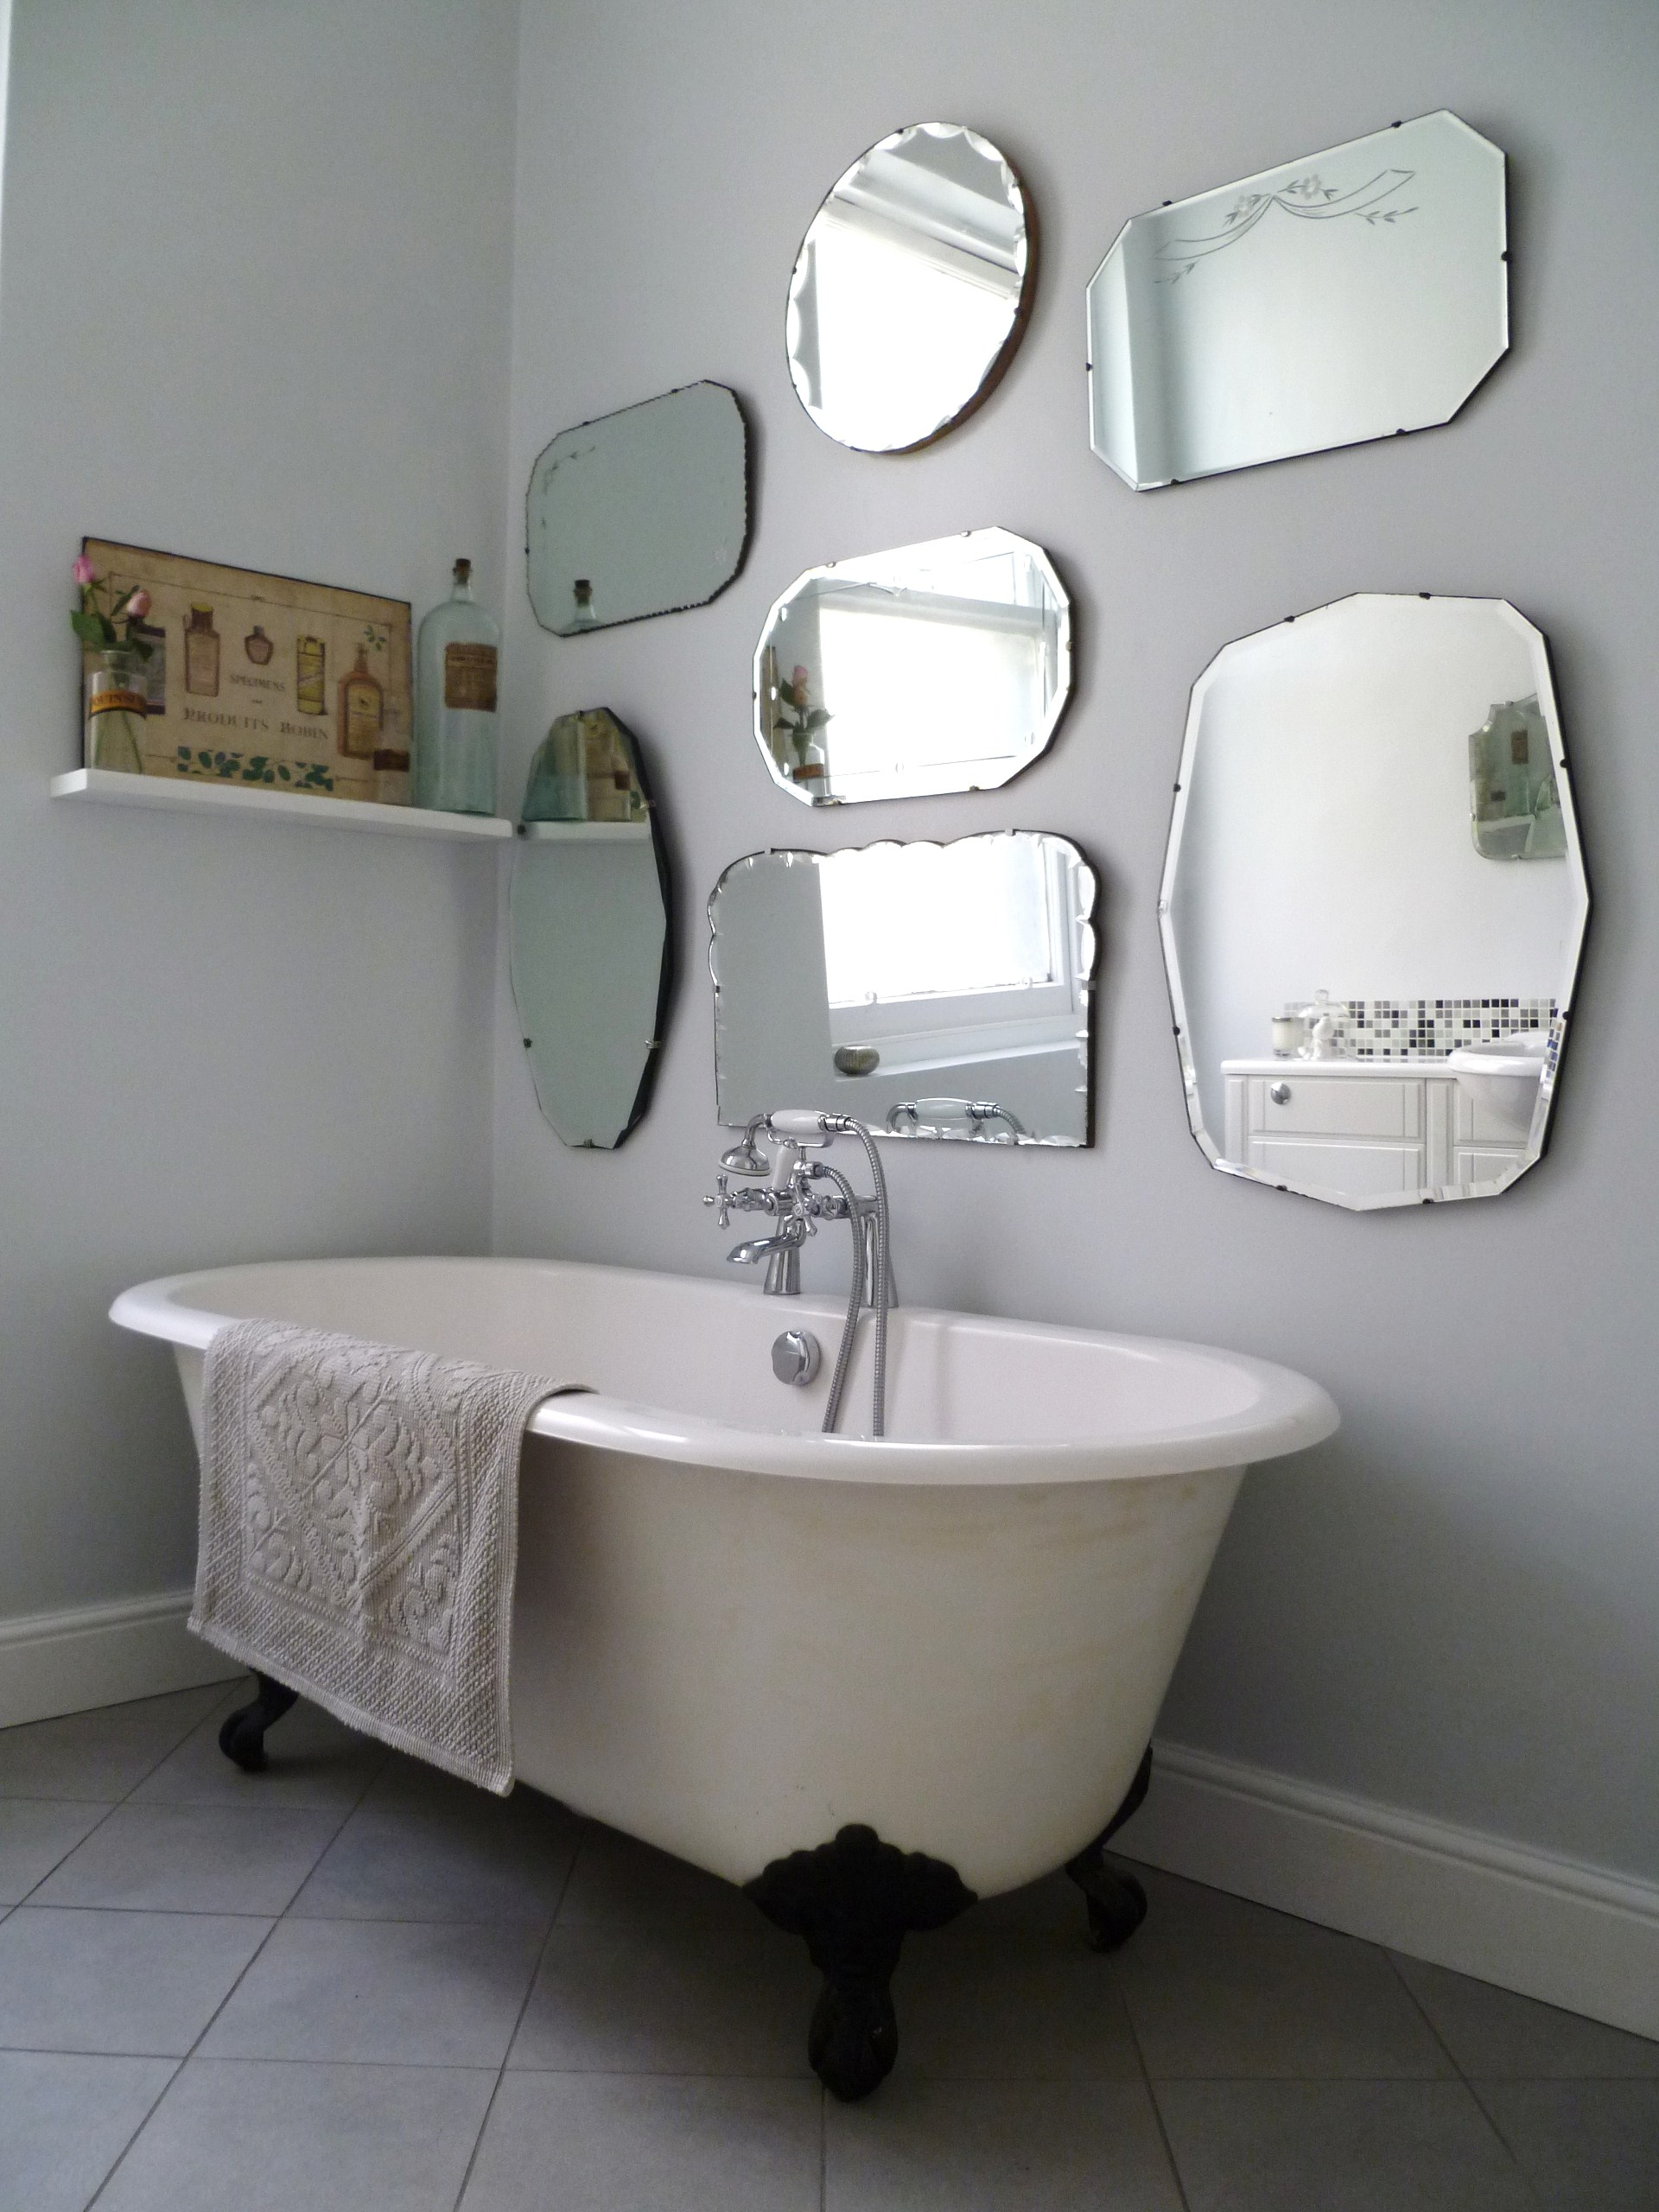 How To Hang A Display Of Vintage Mirrors Mirror Walls Grey And Intended For Unframed Wall Mirror (Image 5 of 15)